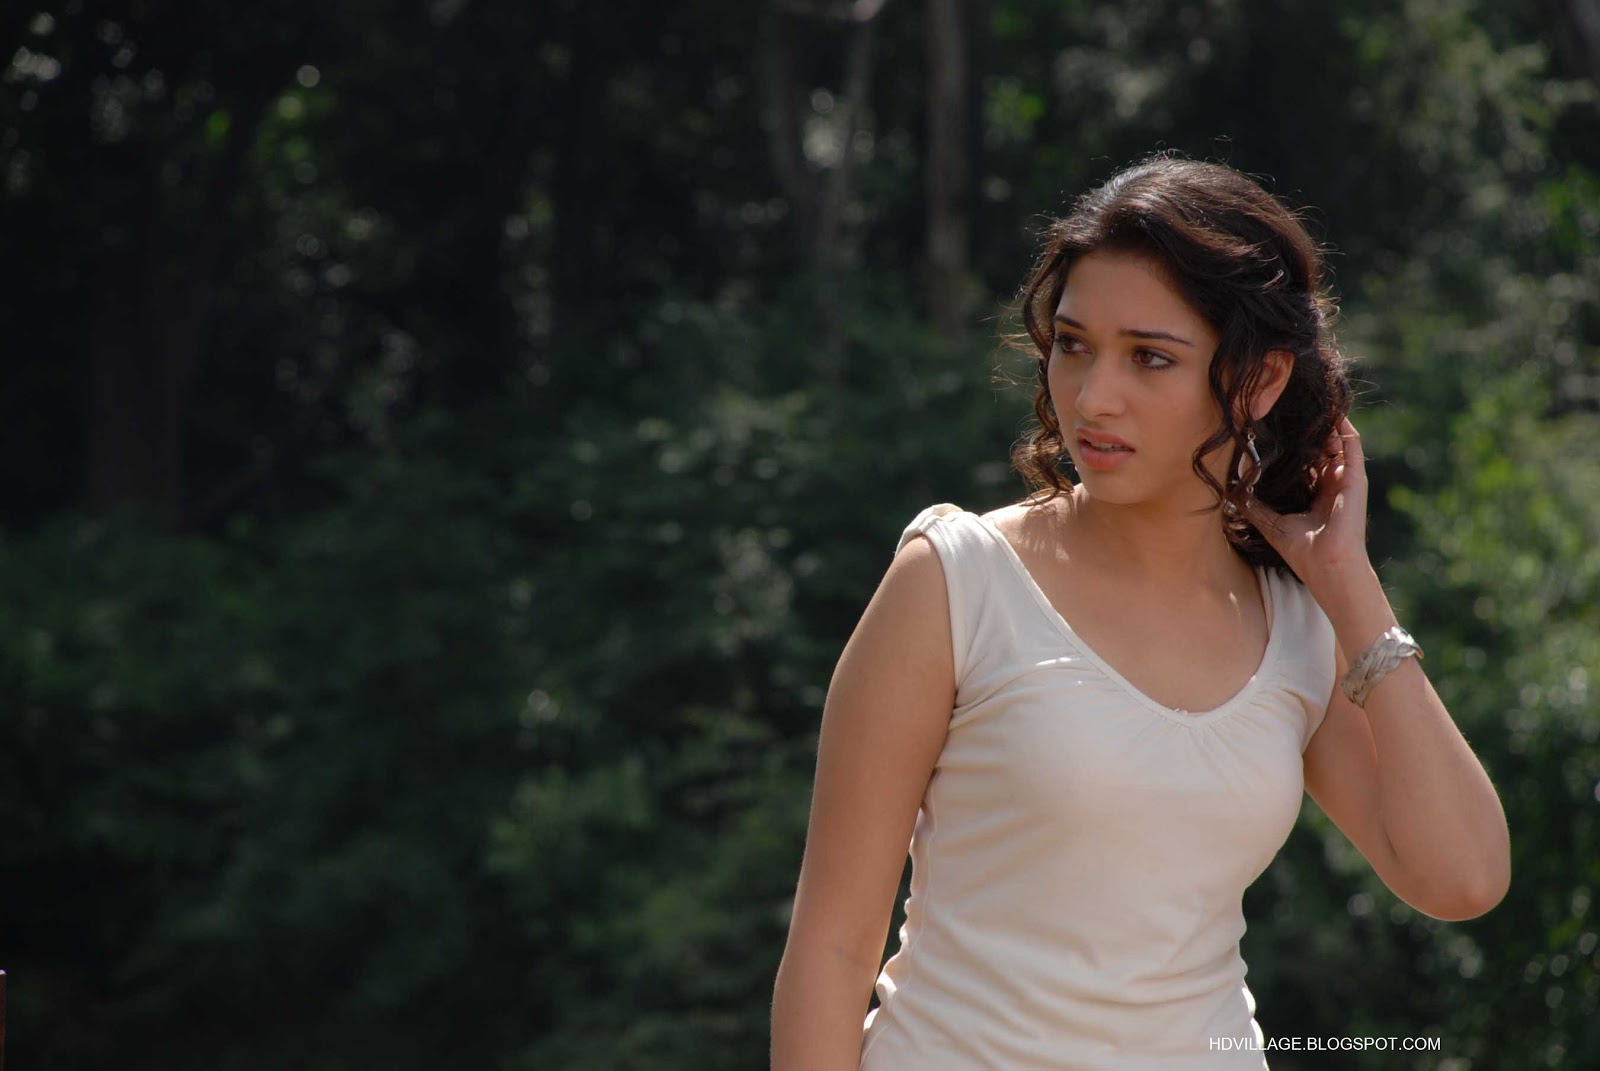 Tamana Hd: HD WALLPAPERS: TAMANNA BHATIA HD WALLPAPERS